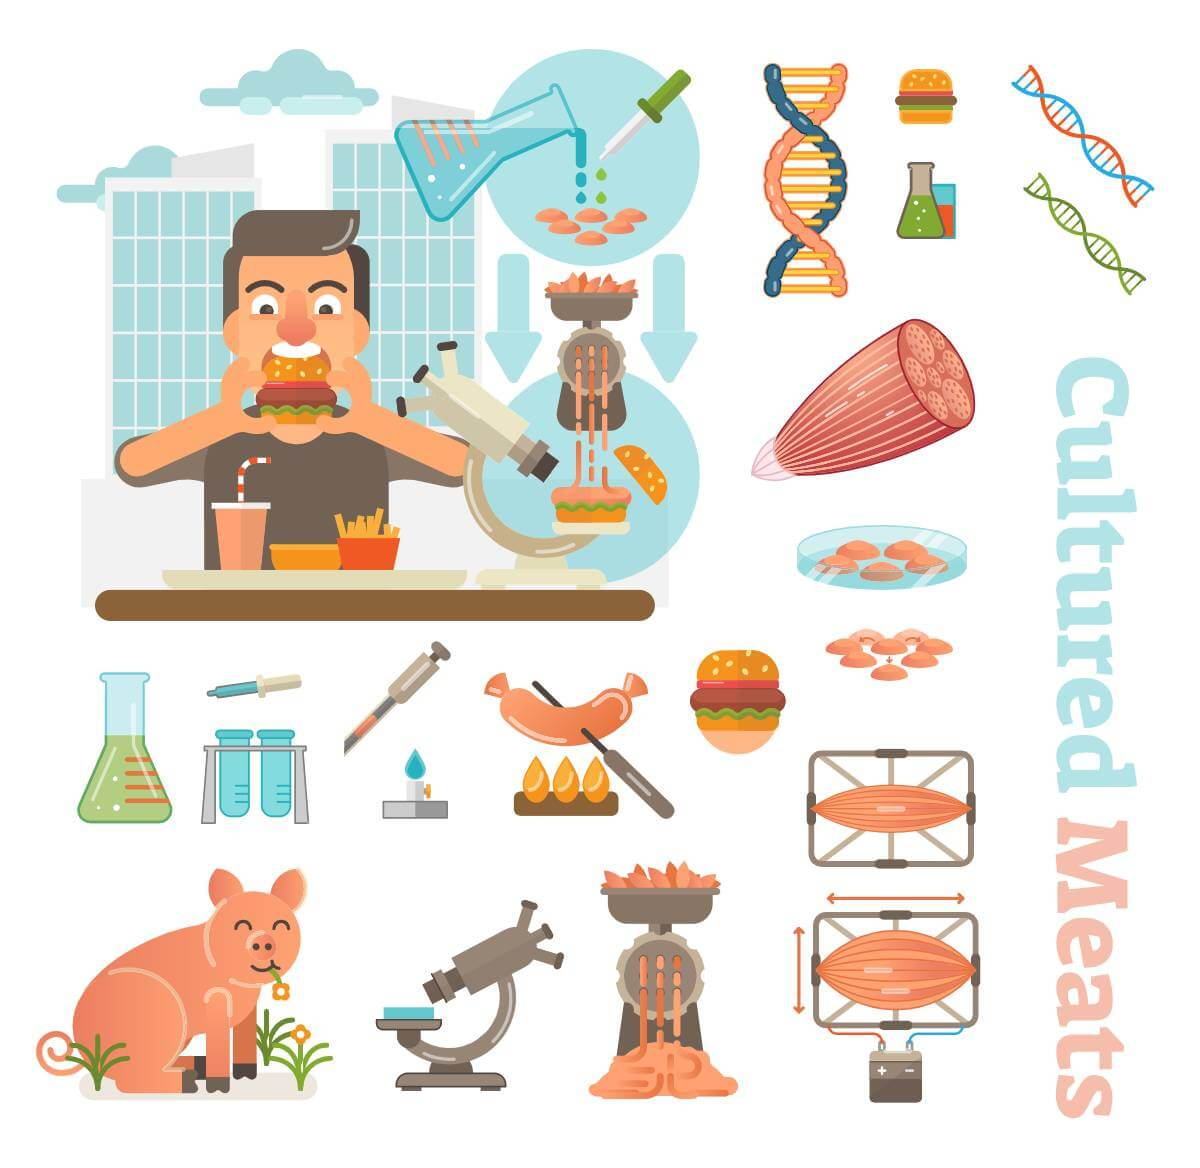 Male eating hamburger produced from a cultured meat in a laboratory on a city scene background